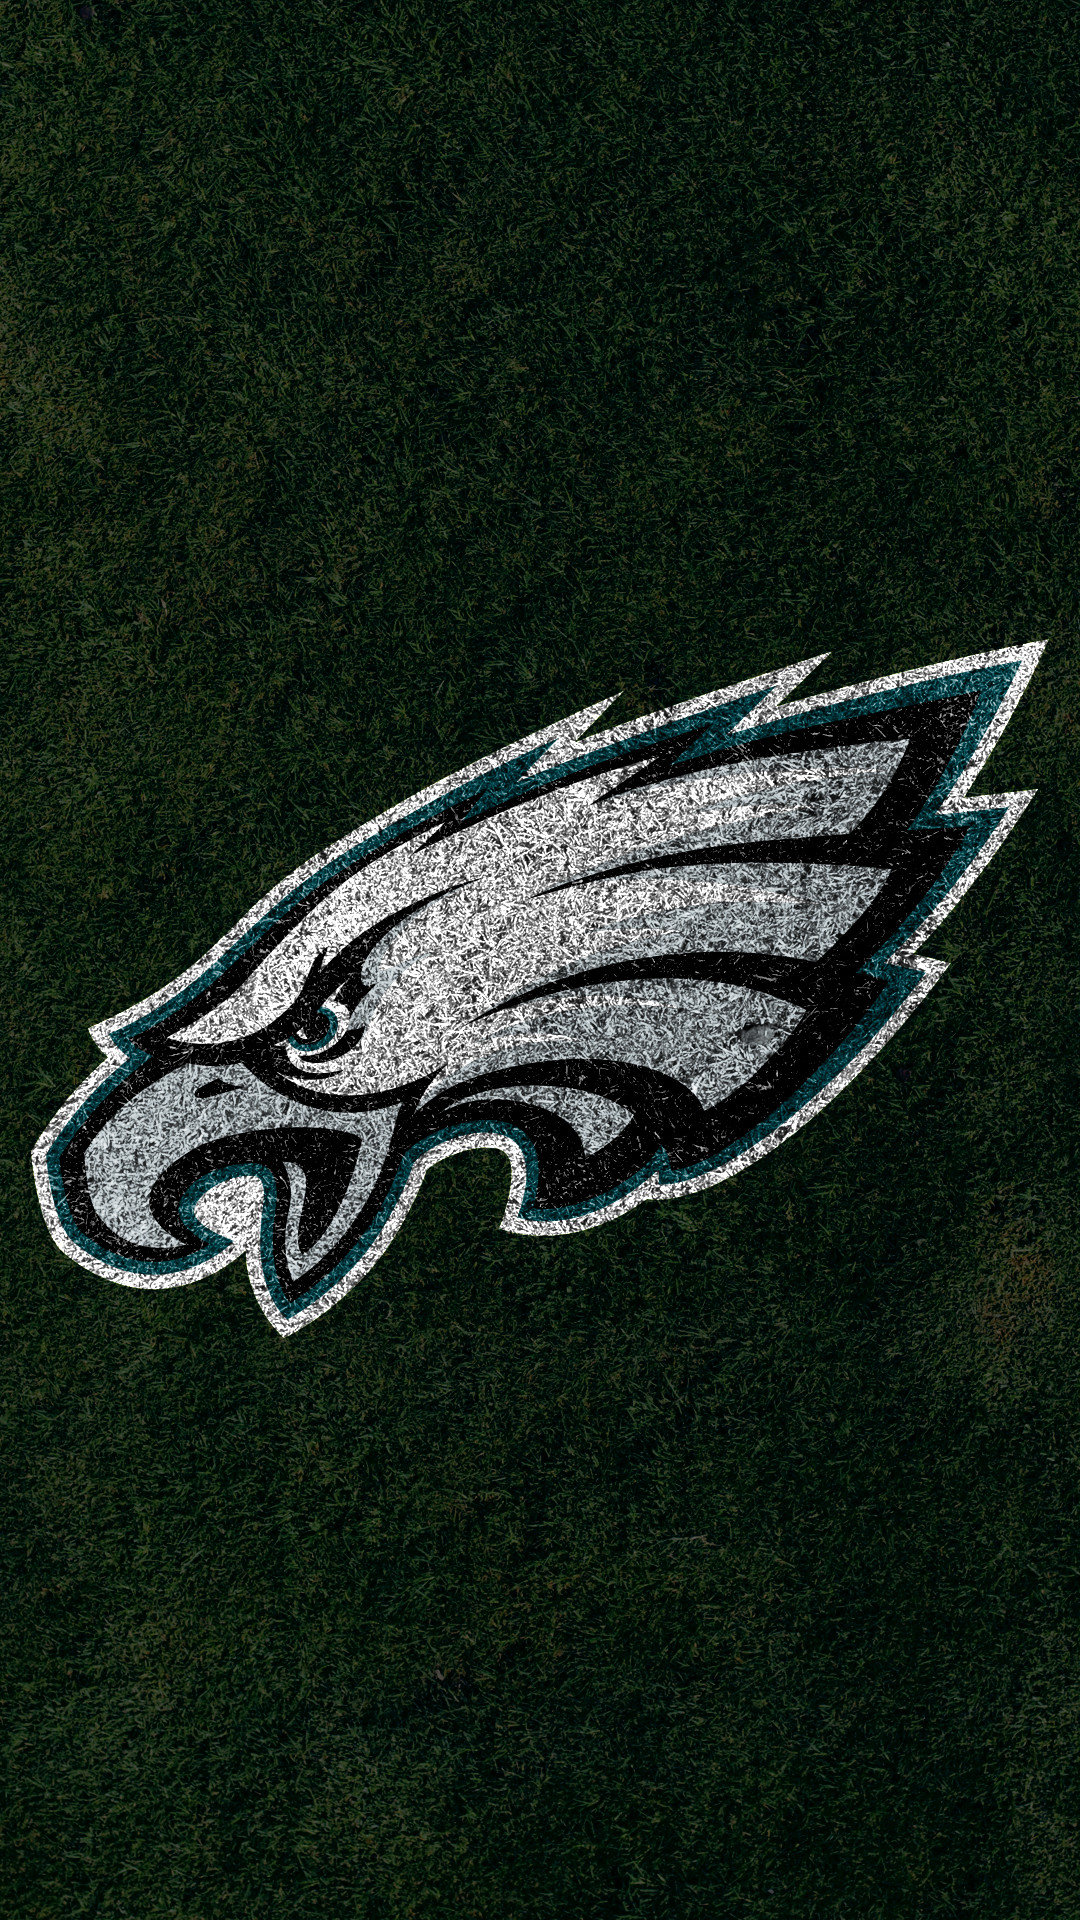 1080x1920 Best 25+ Philadelphia eagles wallpaper ideas on Pinterest | Philadelphia  eagles football, Eagles philly and Philadelphia eagles